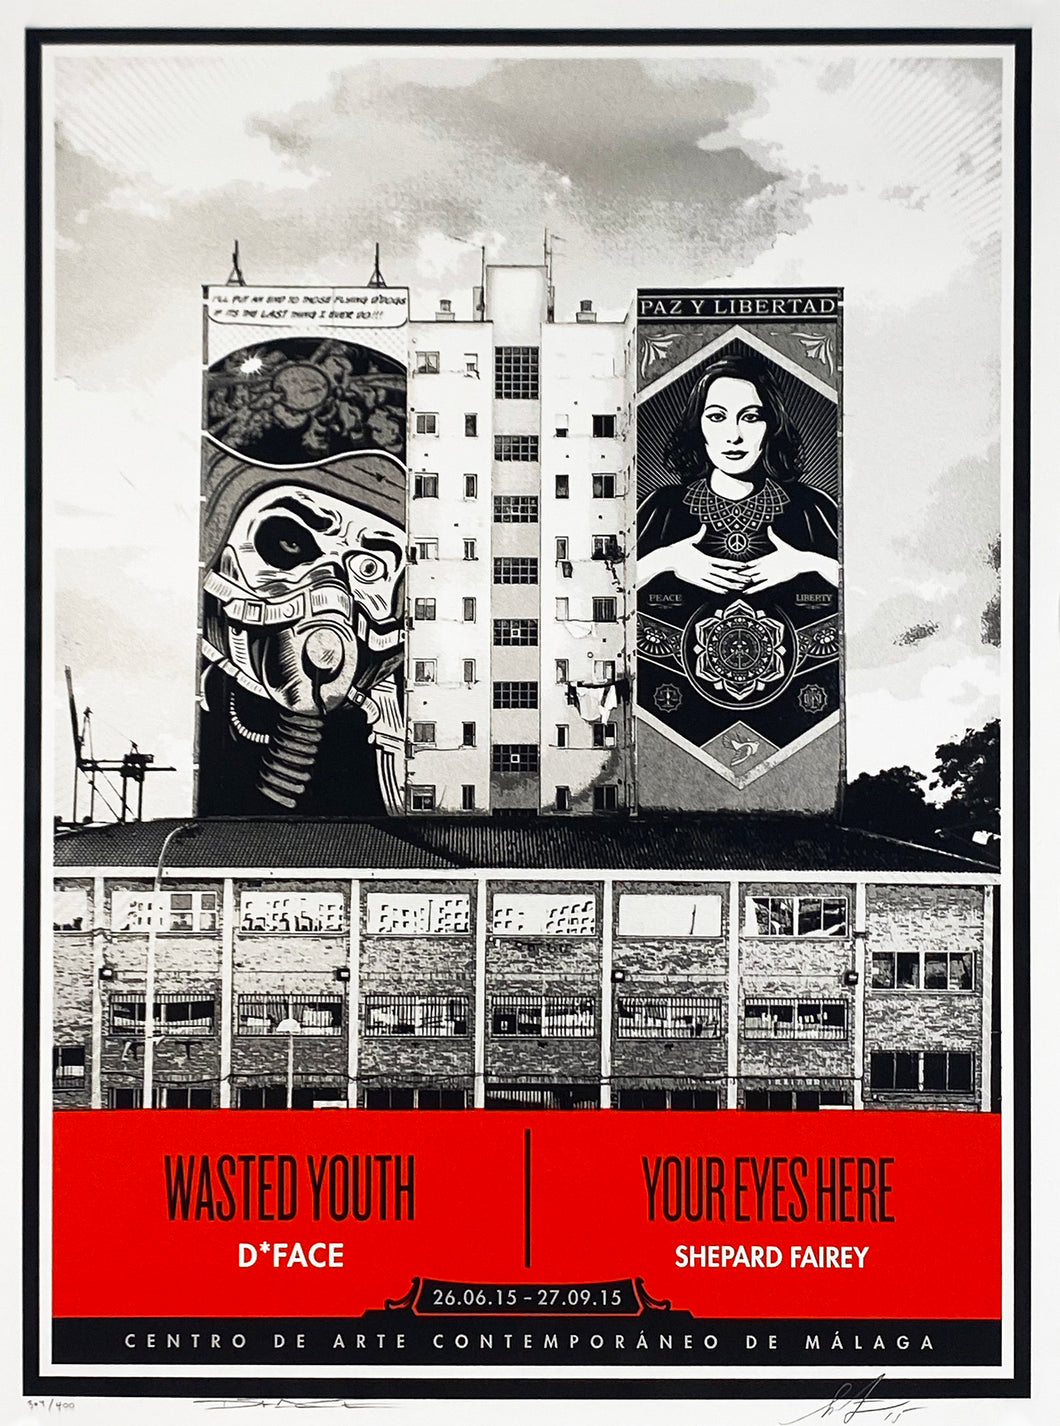 SHEPARD FAIREY x D*FACE 'Wasted Youth/Your Eyes Here' Screen Print